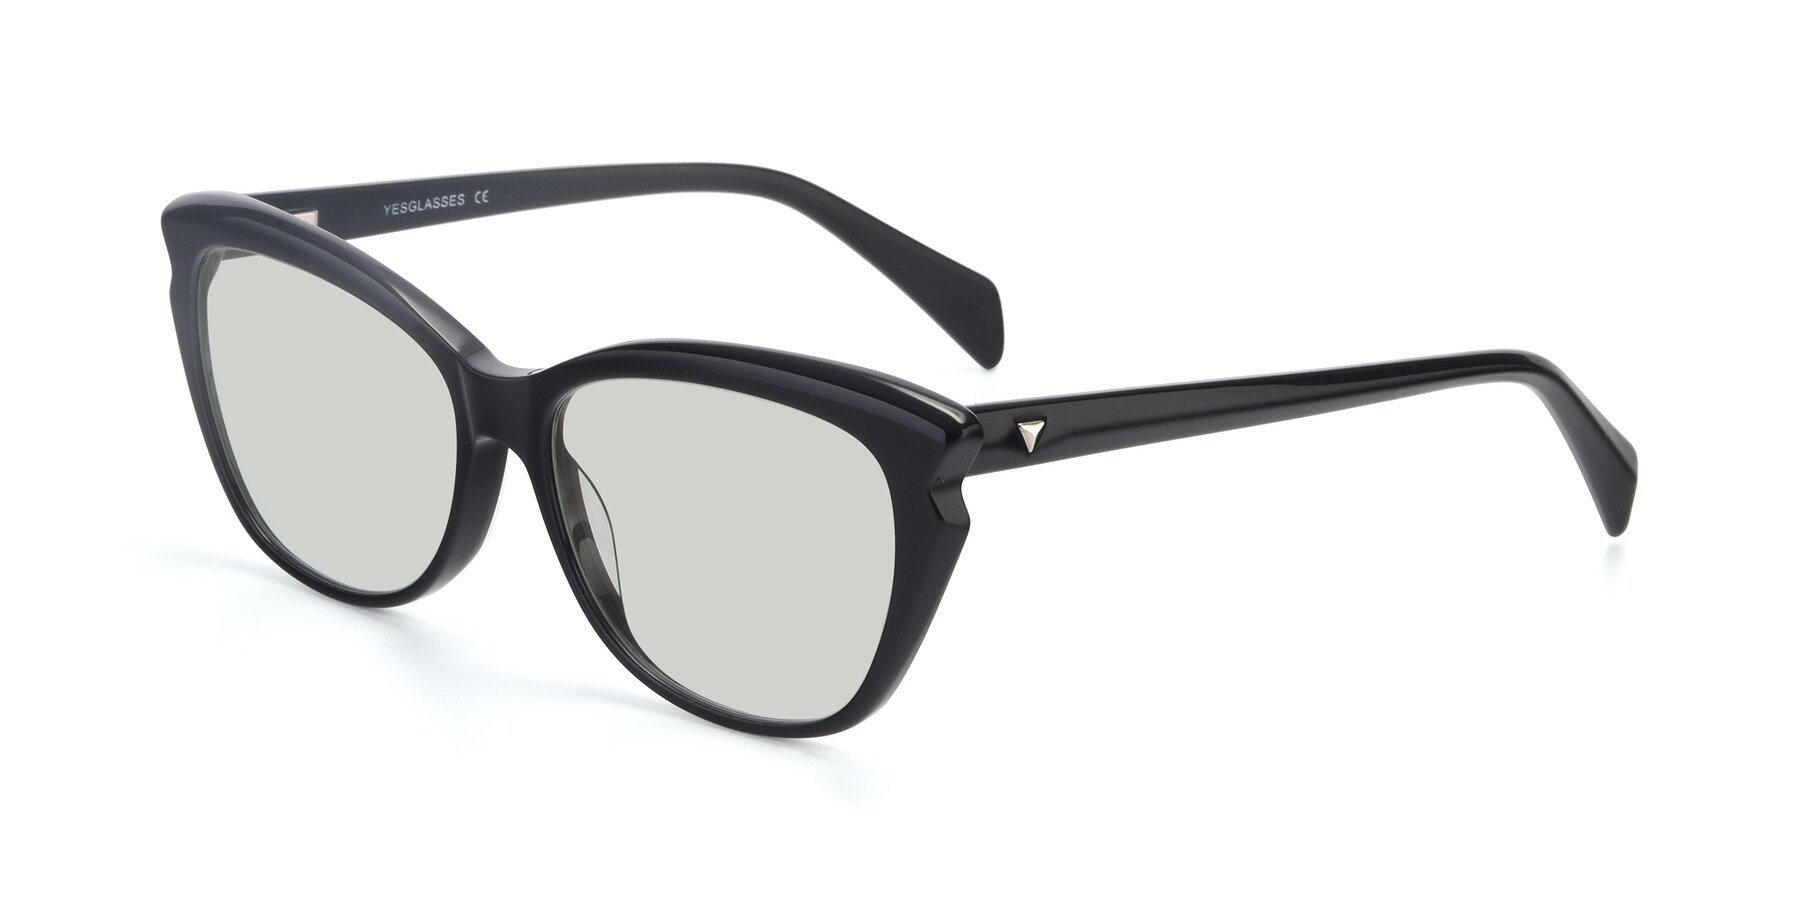 Angle of 17629 in Black with Light Green Tinted Lenses